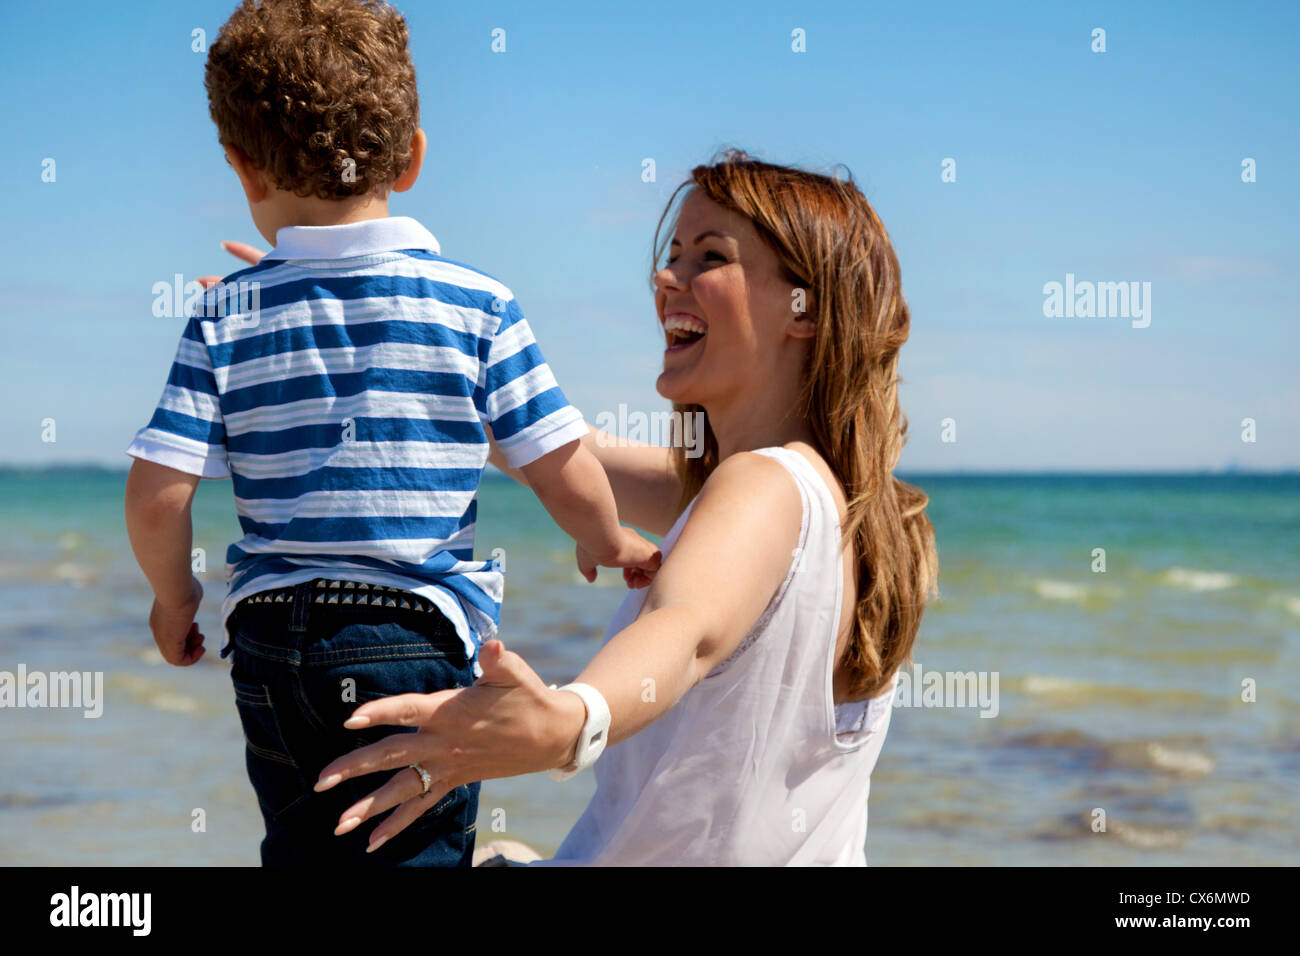 Young mom enjoys the beach as she looks at her son with delight - Stock Image